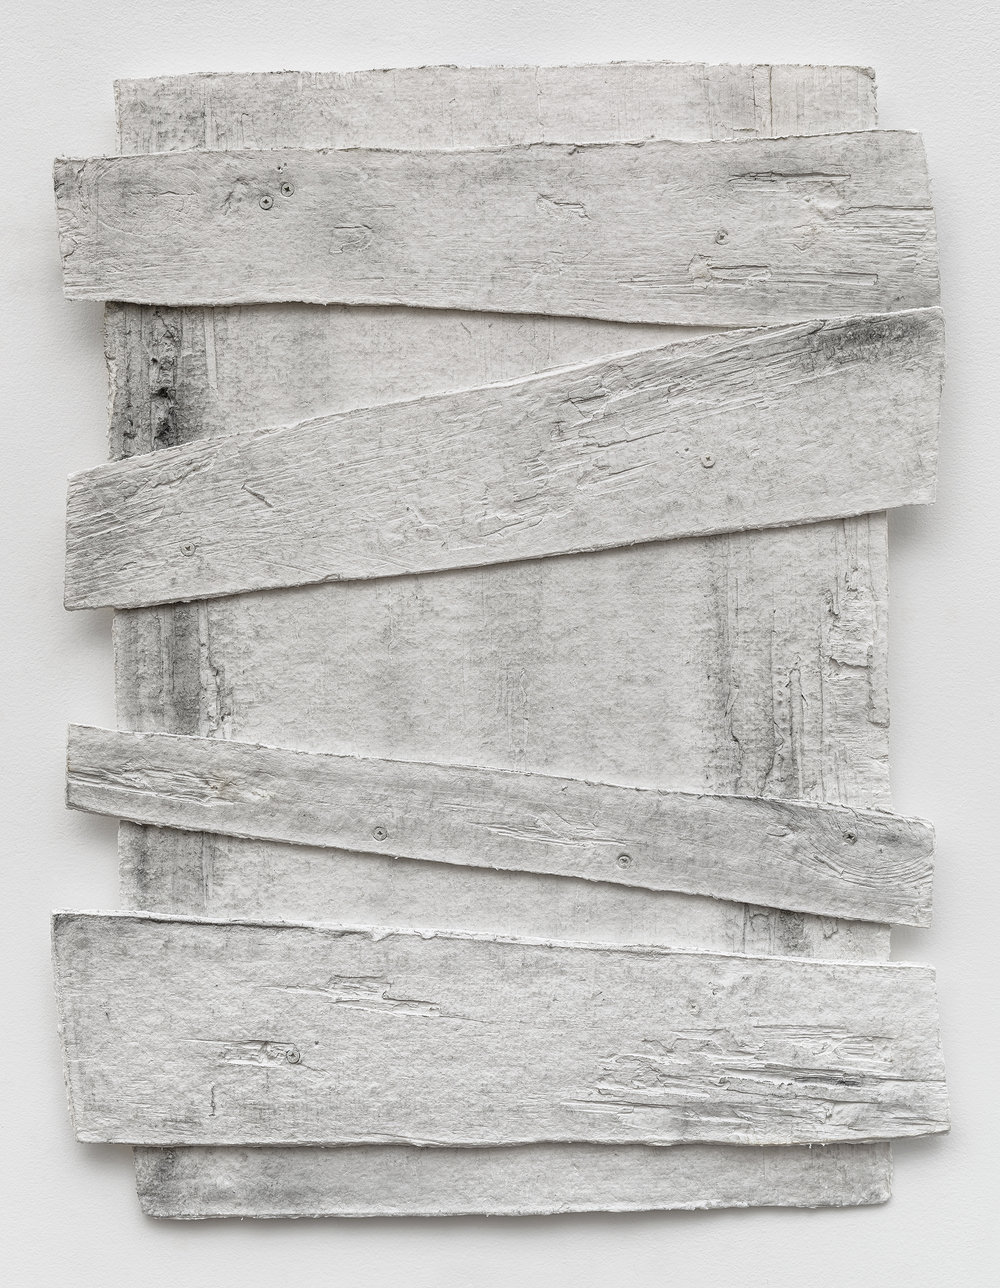 Diana Shpungin   Don't Let The Light In 2 (Stained) , 2018  Graphite, casting cotton paper pulp, linen paper   34 x 27 x 1 inches  Image copyright and courtesy of Etienne Frossard.